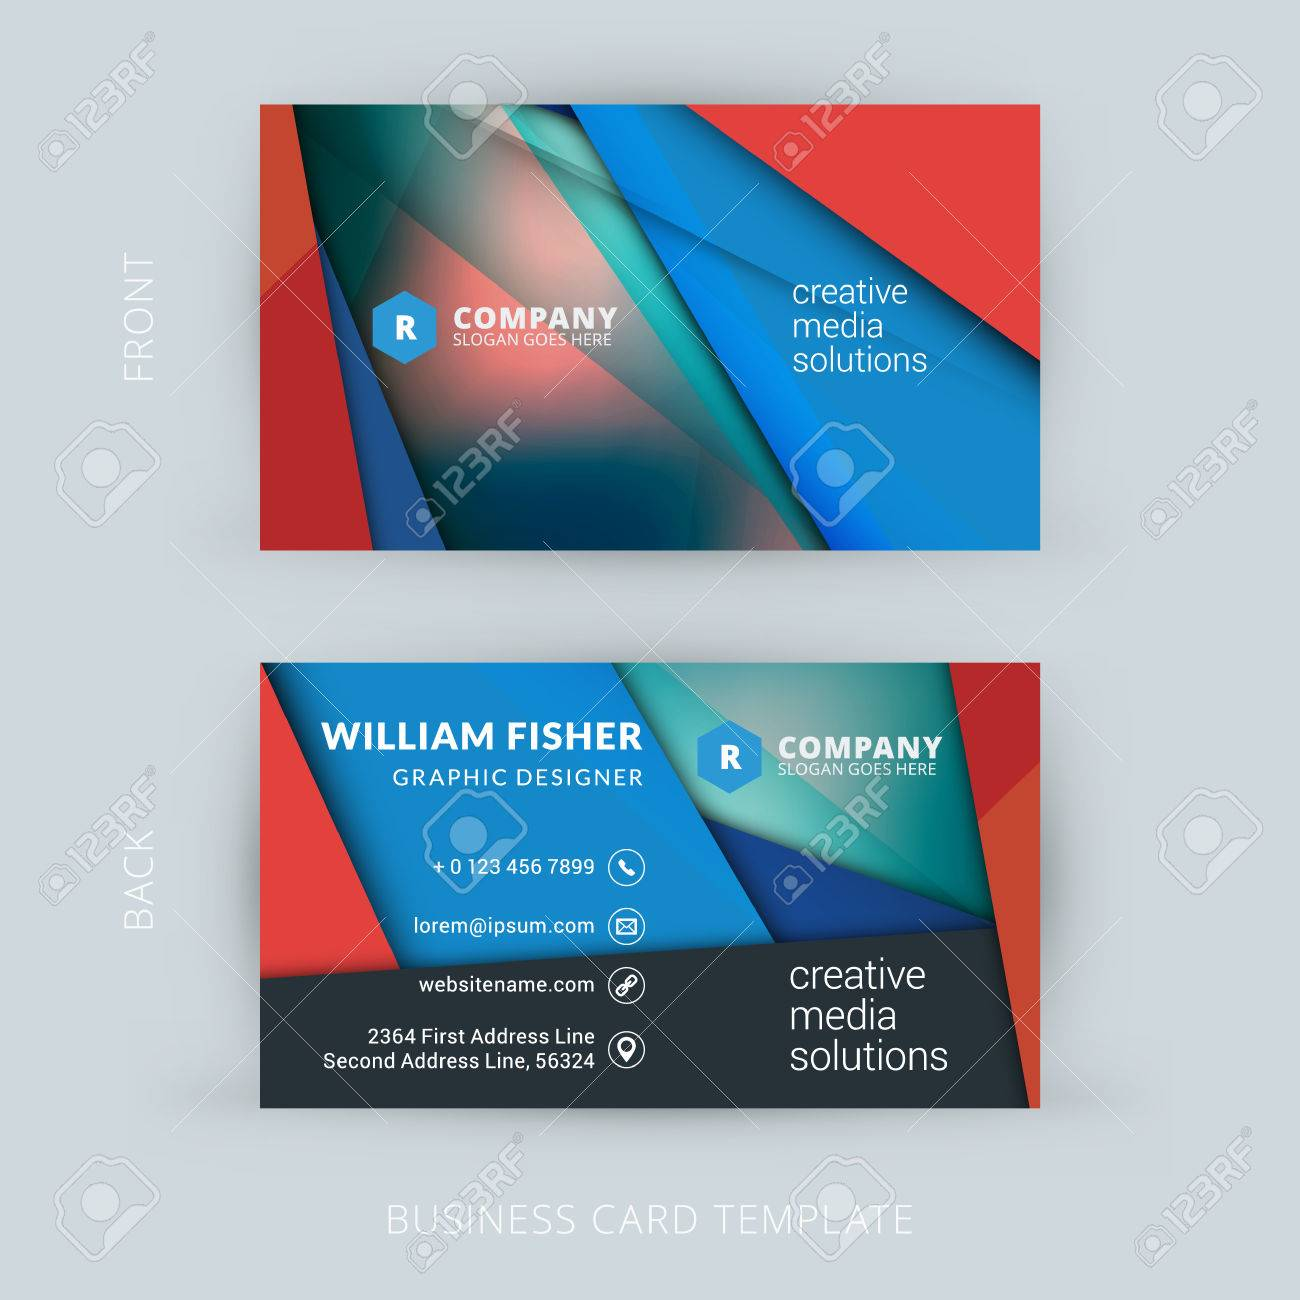 Creative and clean business card template with material design creative and clean business card template with material design abstract colorful background stock vector 44989817 magicingreecefo Choice Image